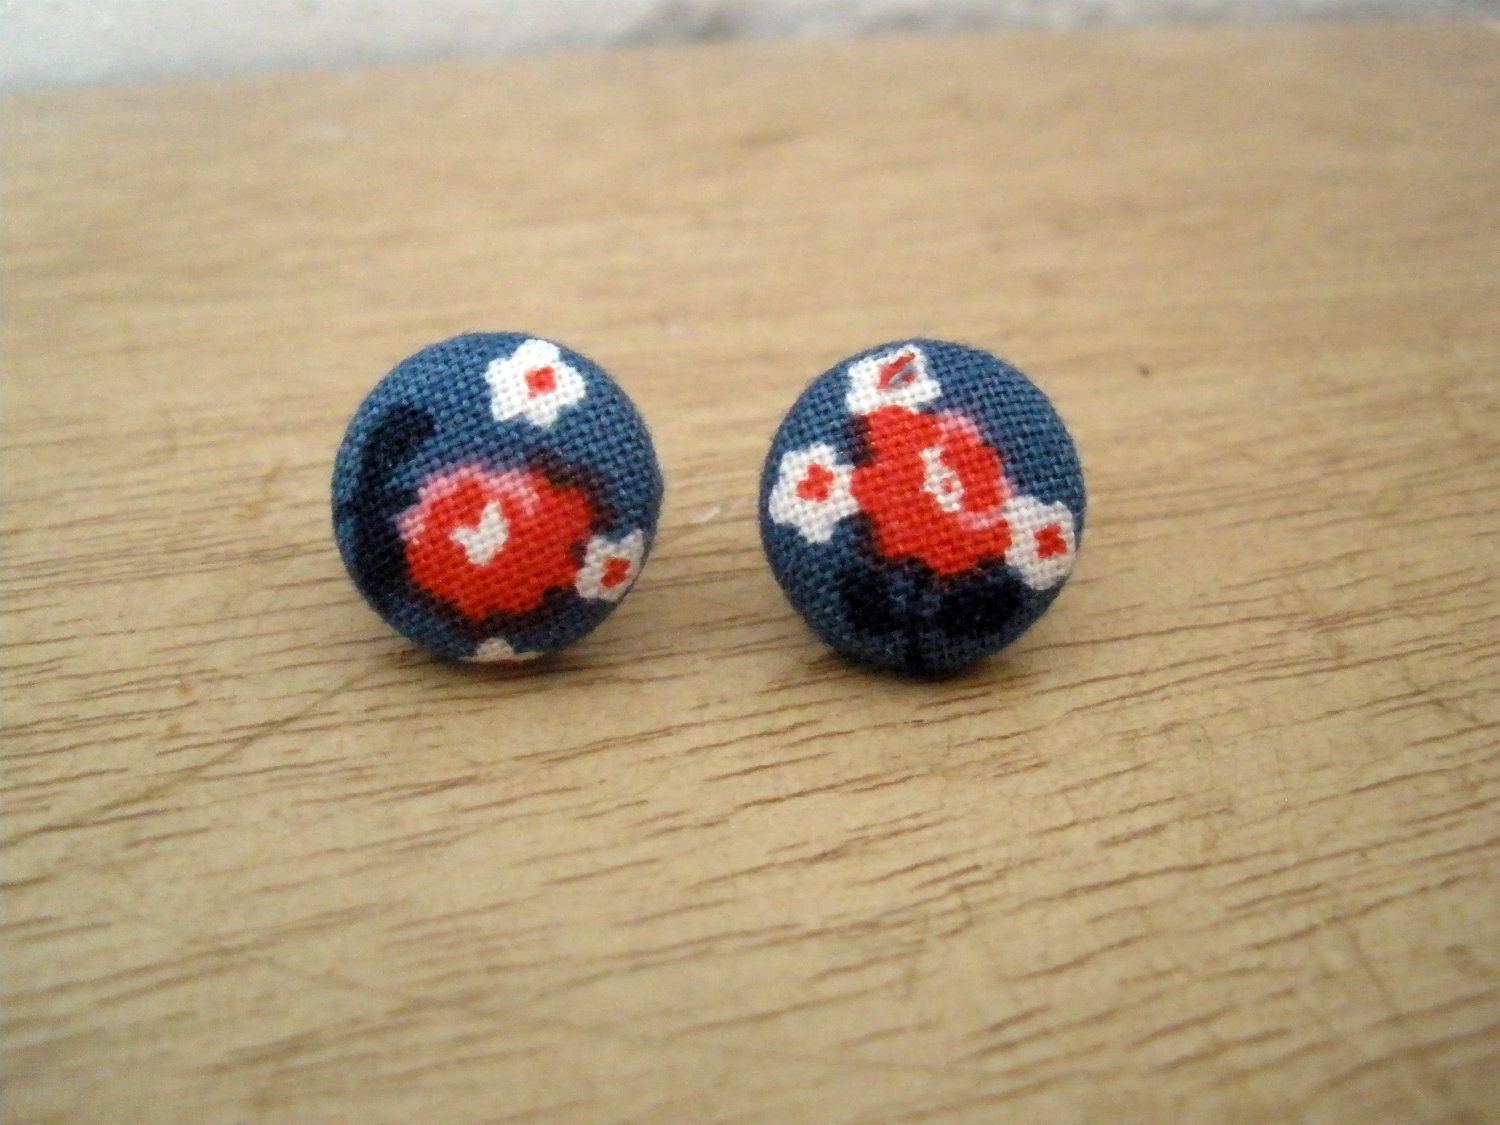 Chinese Blossom Fabric Covered Earrings. $3.00, via Etsy.